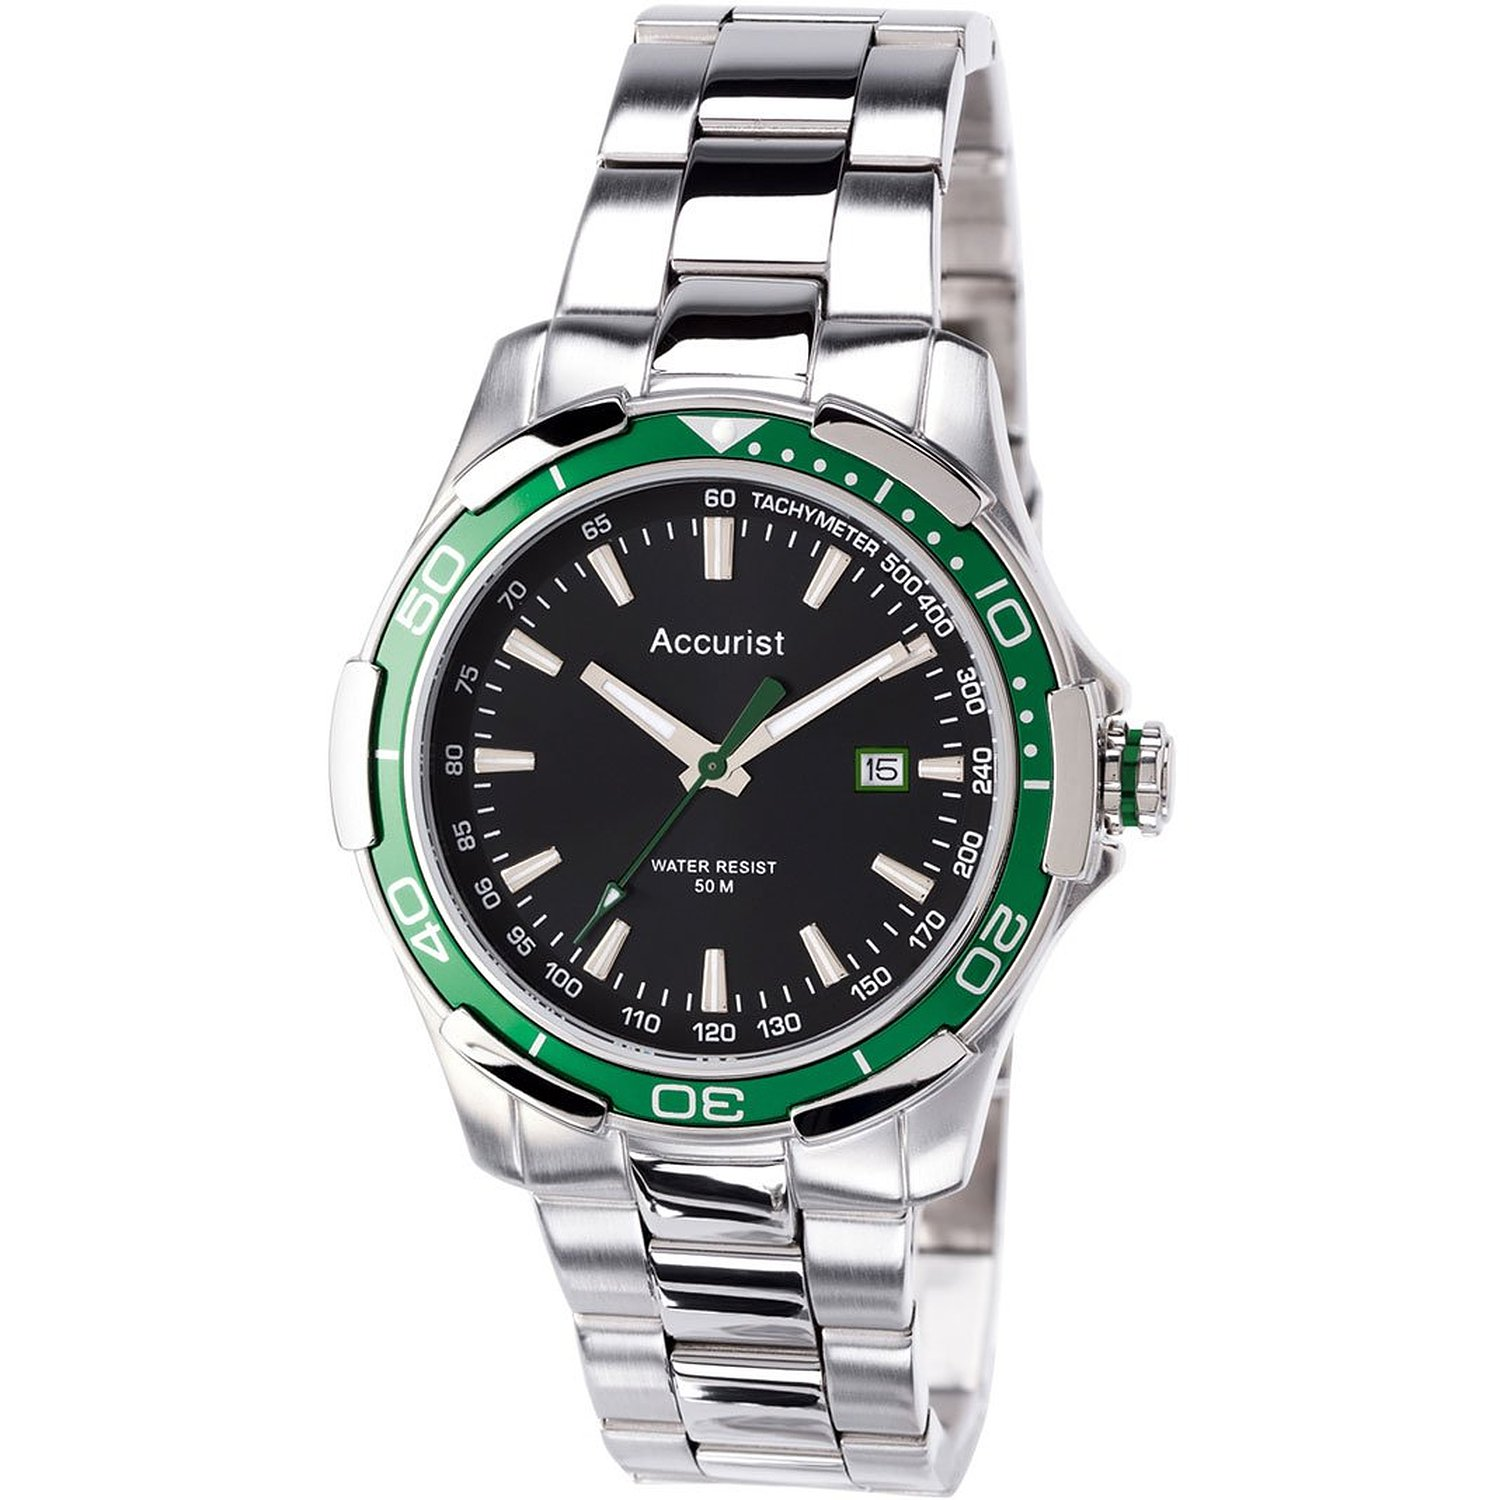 21 most popular accurist s watches 2015 the